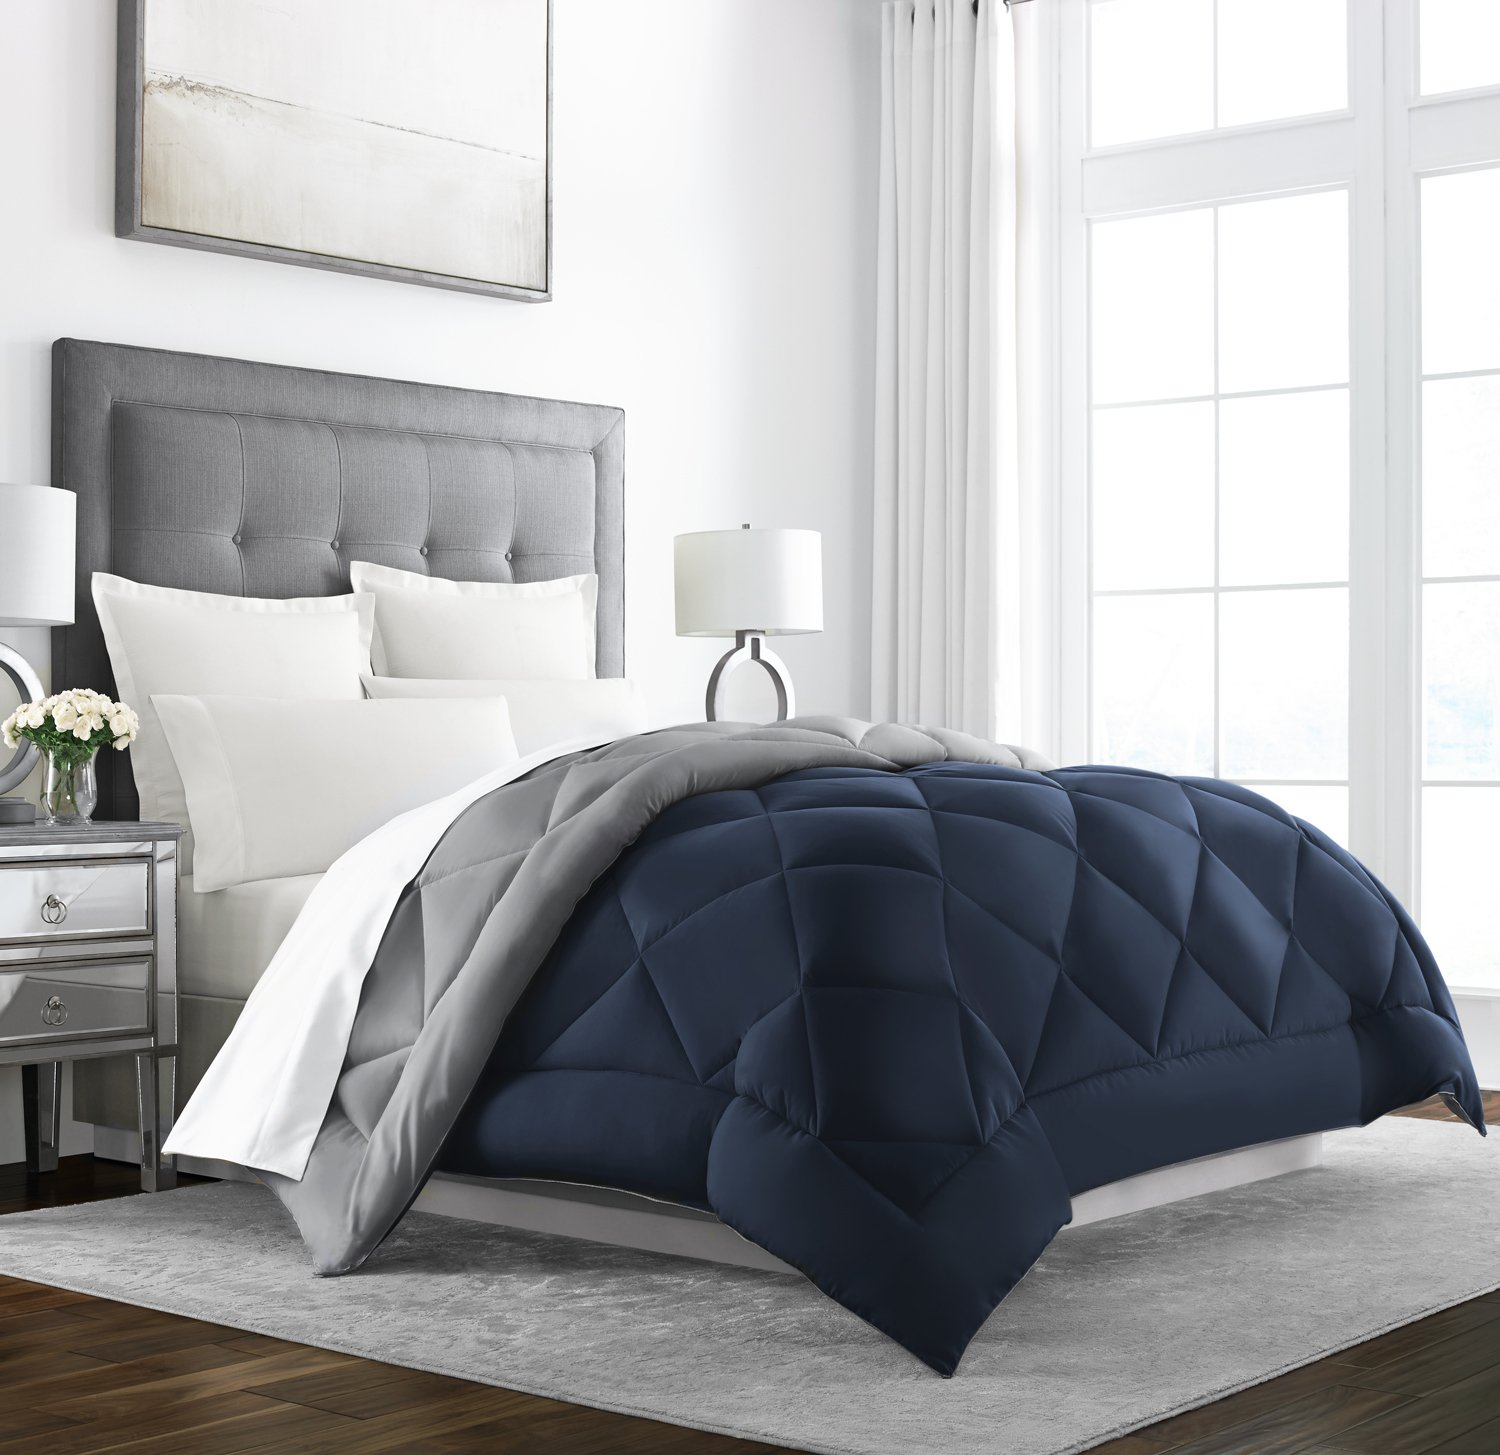 reviews feather all simple heavy sale winter cover comforters size bedroom for caring cozy blanket summer white how of duvet your and down s goose king full lightweight theamphlettscom ideas top comforter twin duvets alternative thin insert store way best colored light season